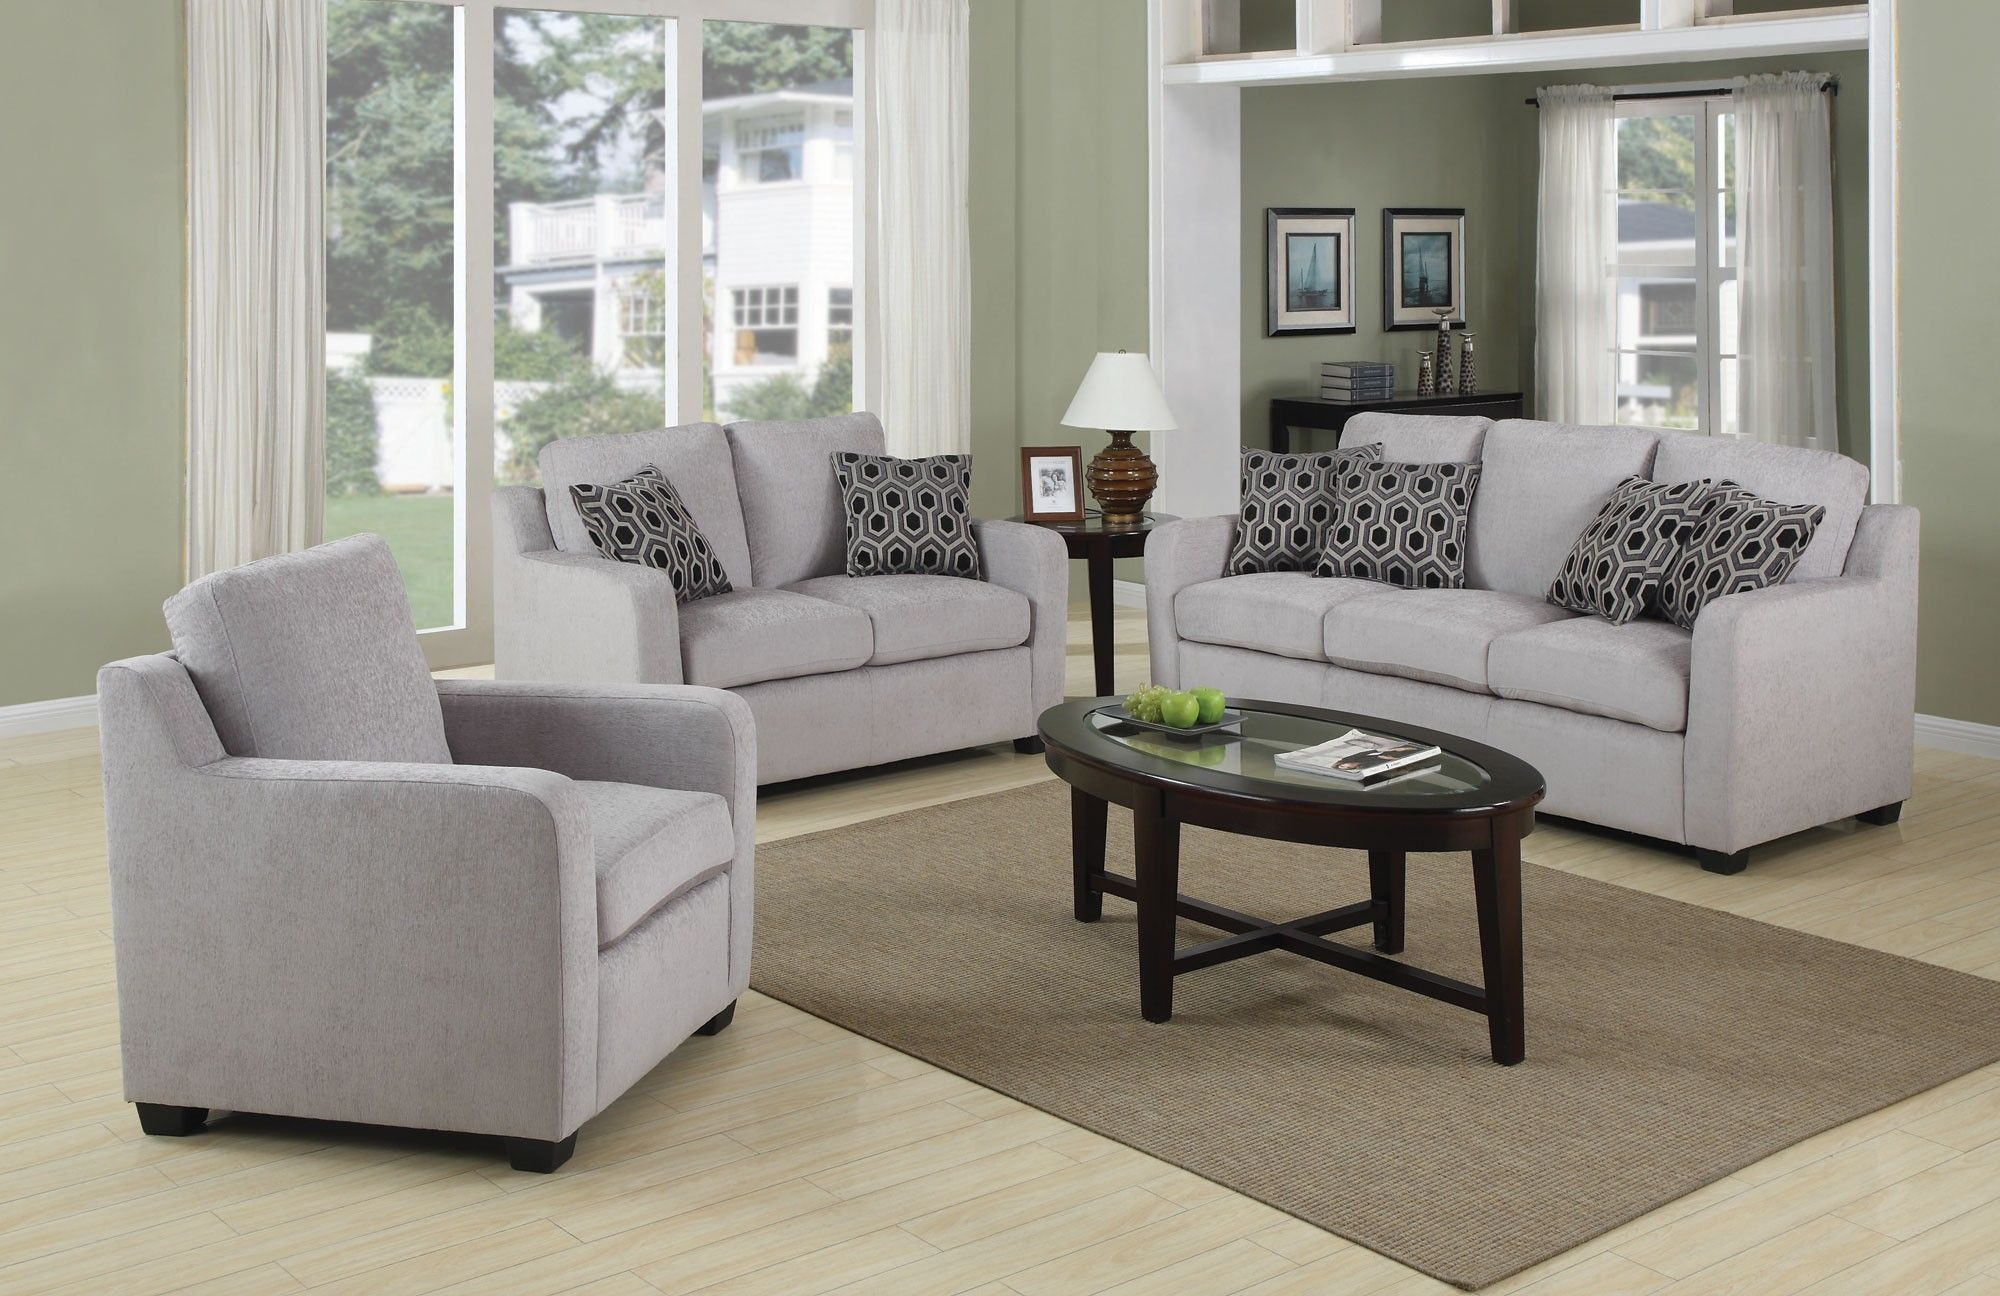 12 Awesome Ideas How to Improve Living Room Set For Cheap  Cheap